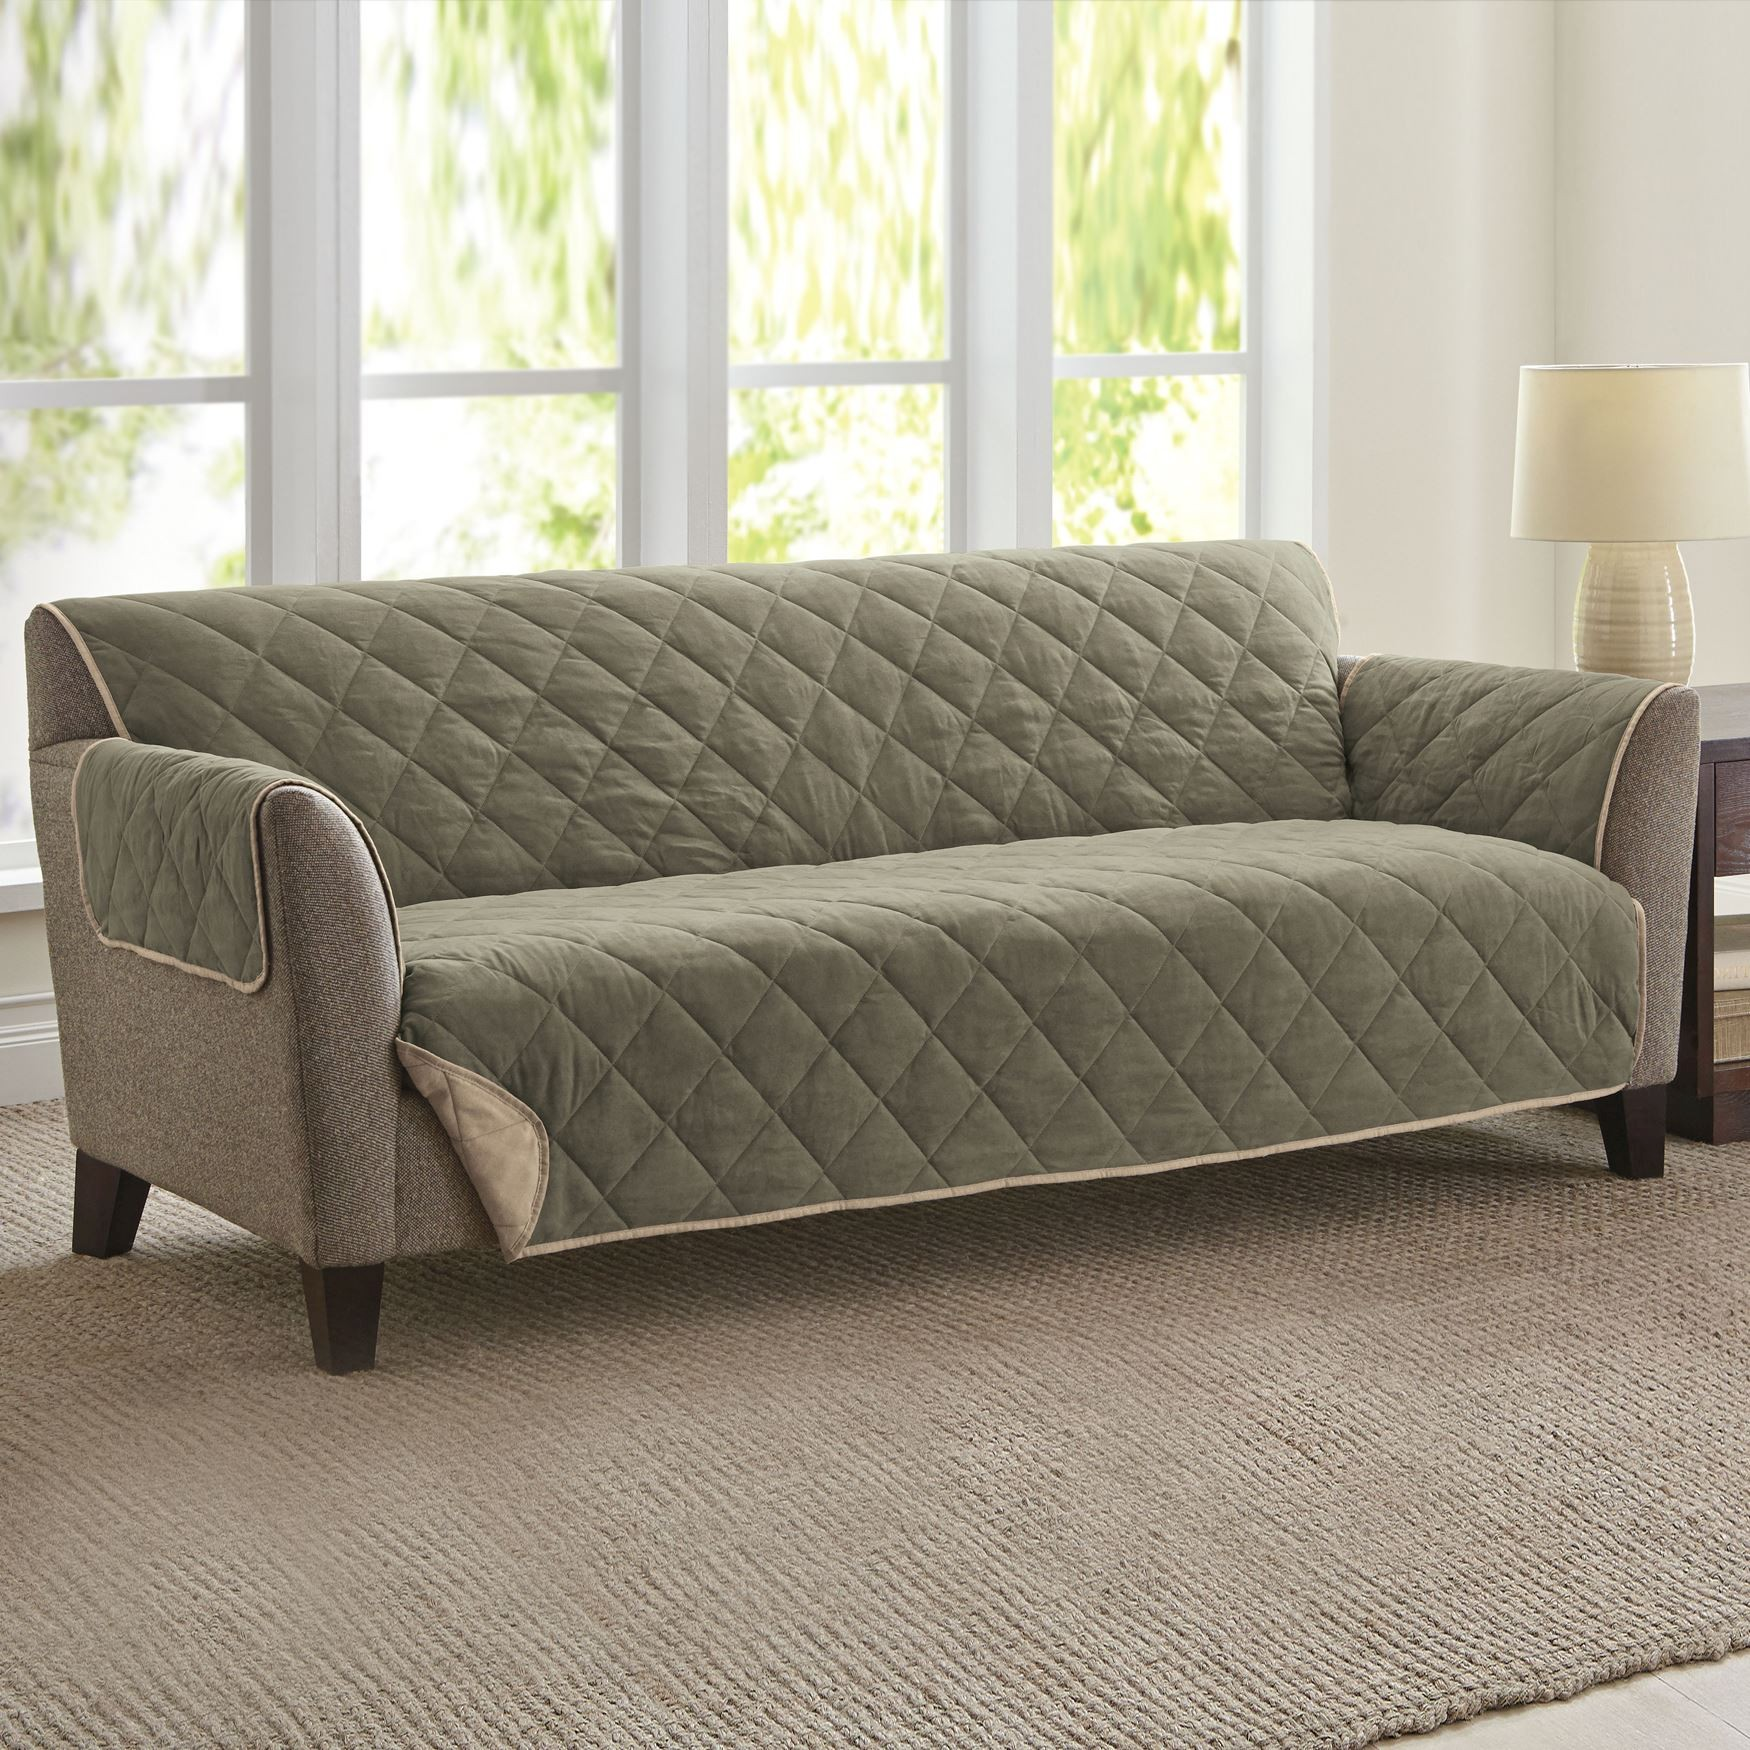 Extra Long sofa Slipcover Best Of Good Extra Long sofa Slipcover for Modern sofa Ideas with Extra Collection